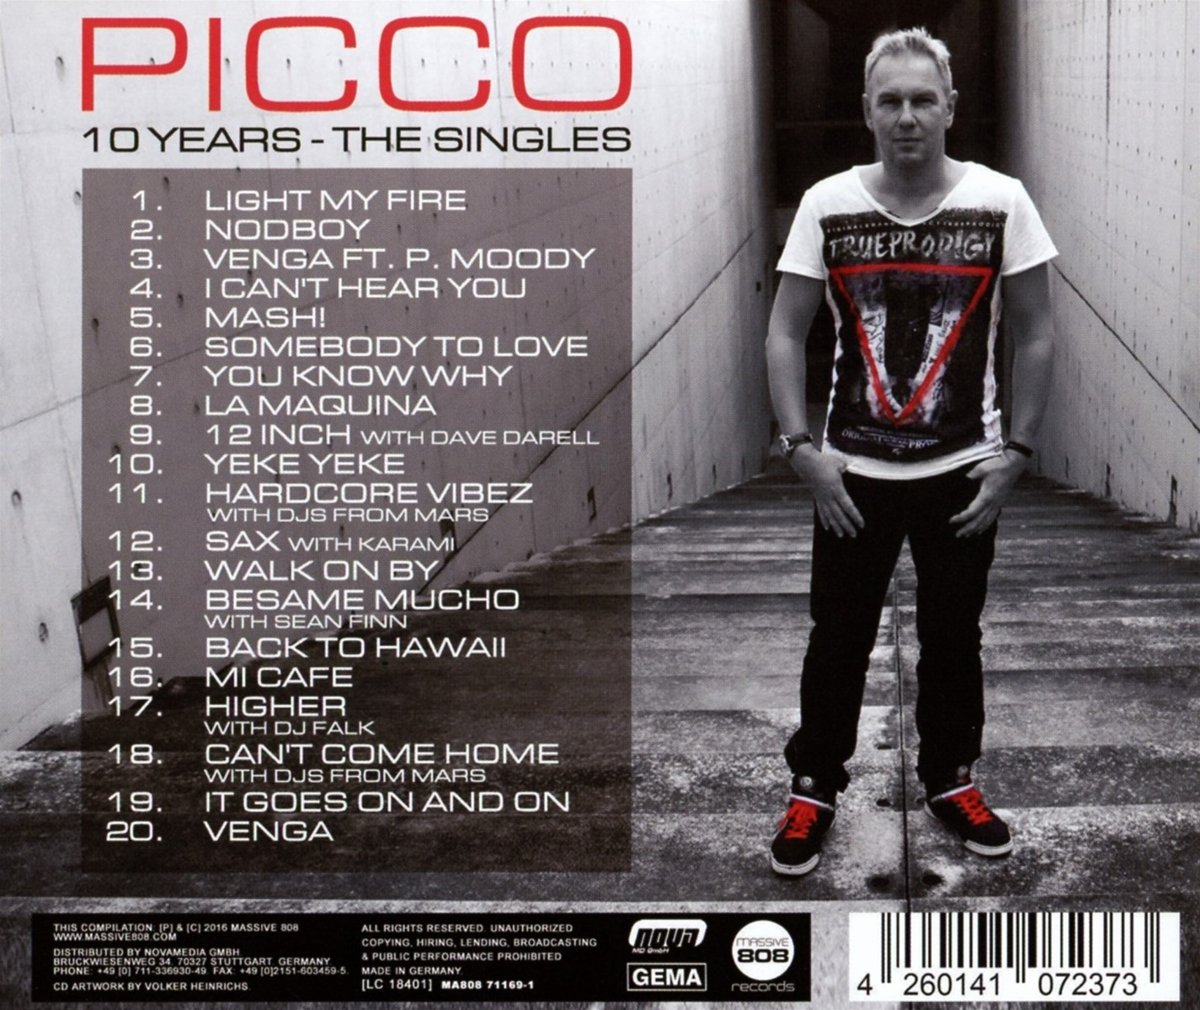 Picco Feat. Sean Finn/Dave Darell/Djs From Mars... - 10 Years - The Singles - Amazon.com Music